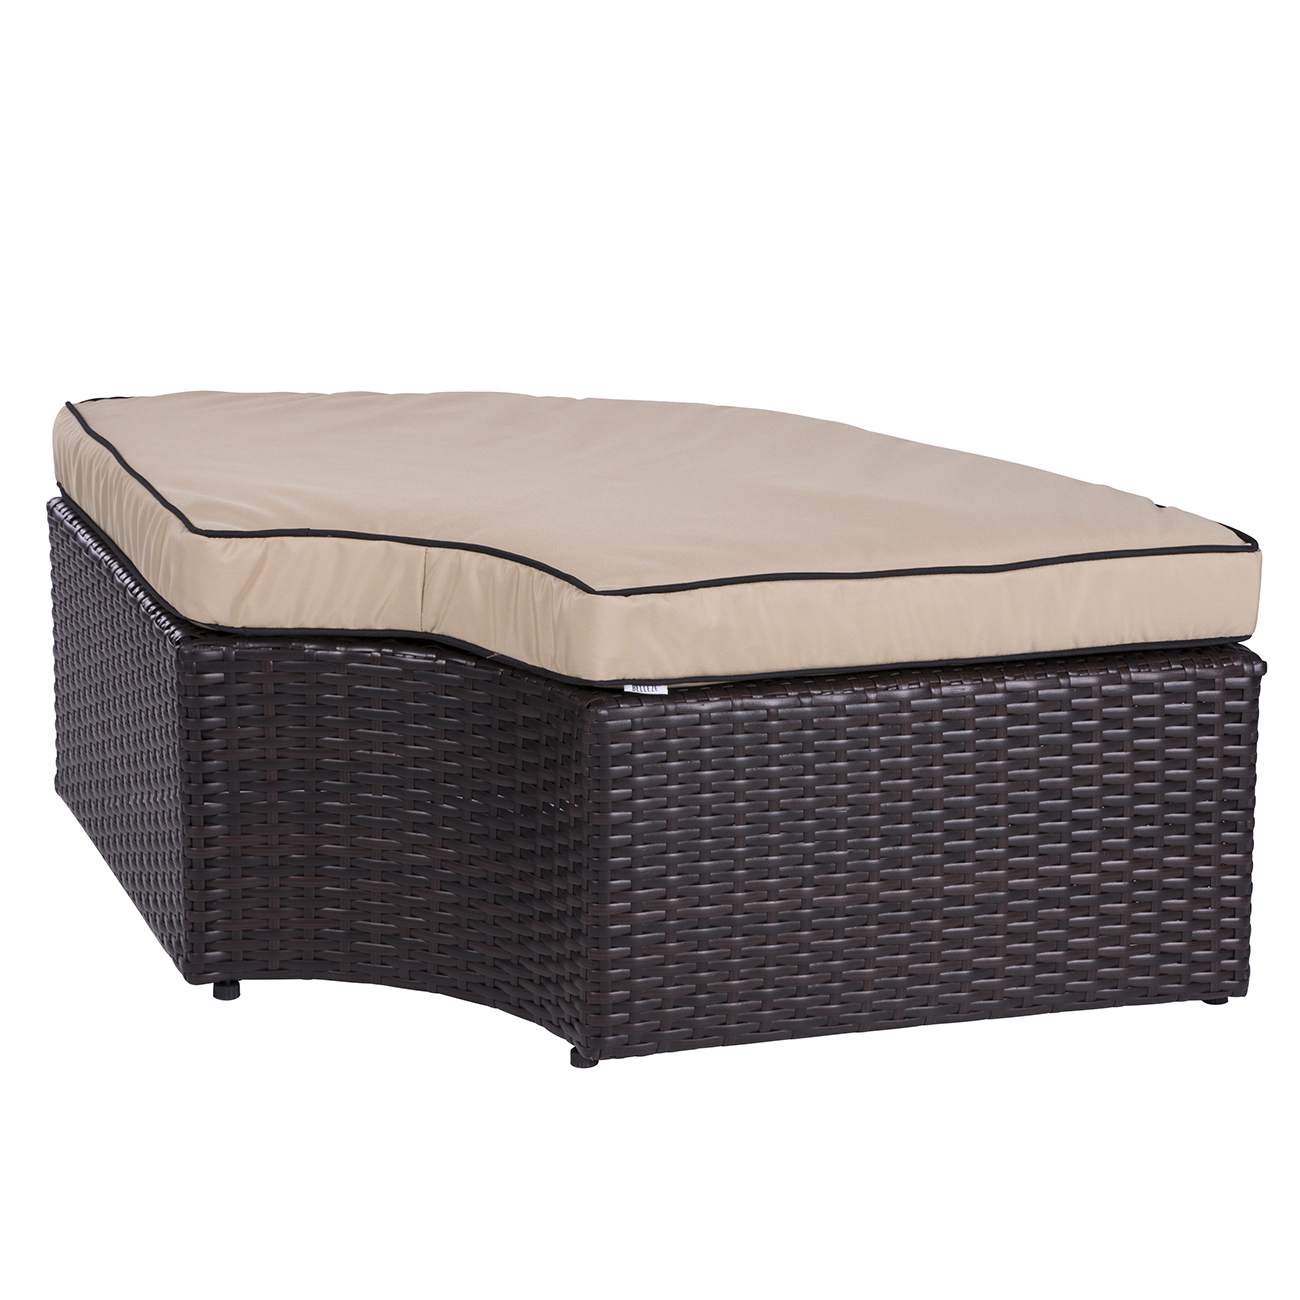 patio 2 in 1 rattan wicker lounge set round sunbed sofa w canopy outdoor daybed ebay. Black Bedroom Furniture Sets. Home Design Ideas